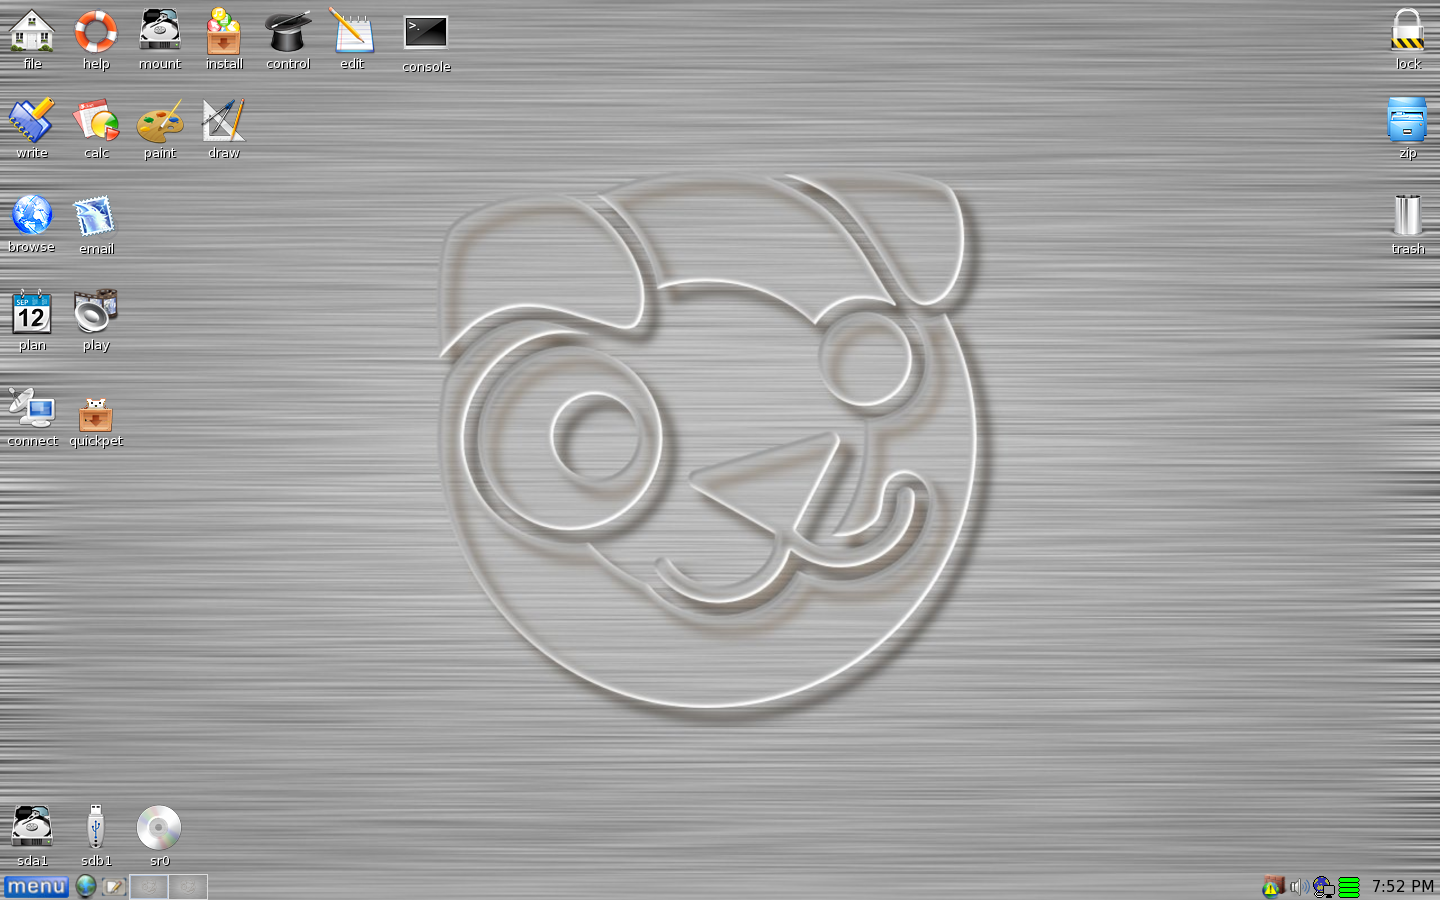 Puppy Linux 5.2.8